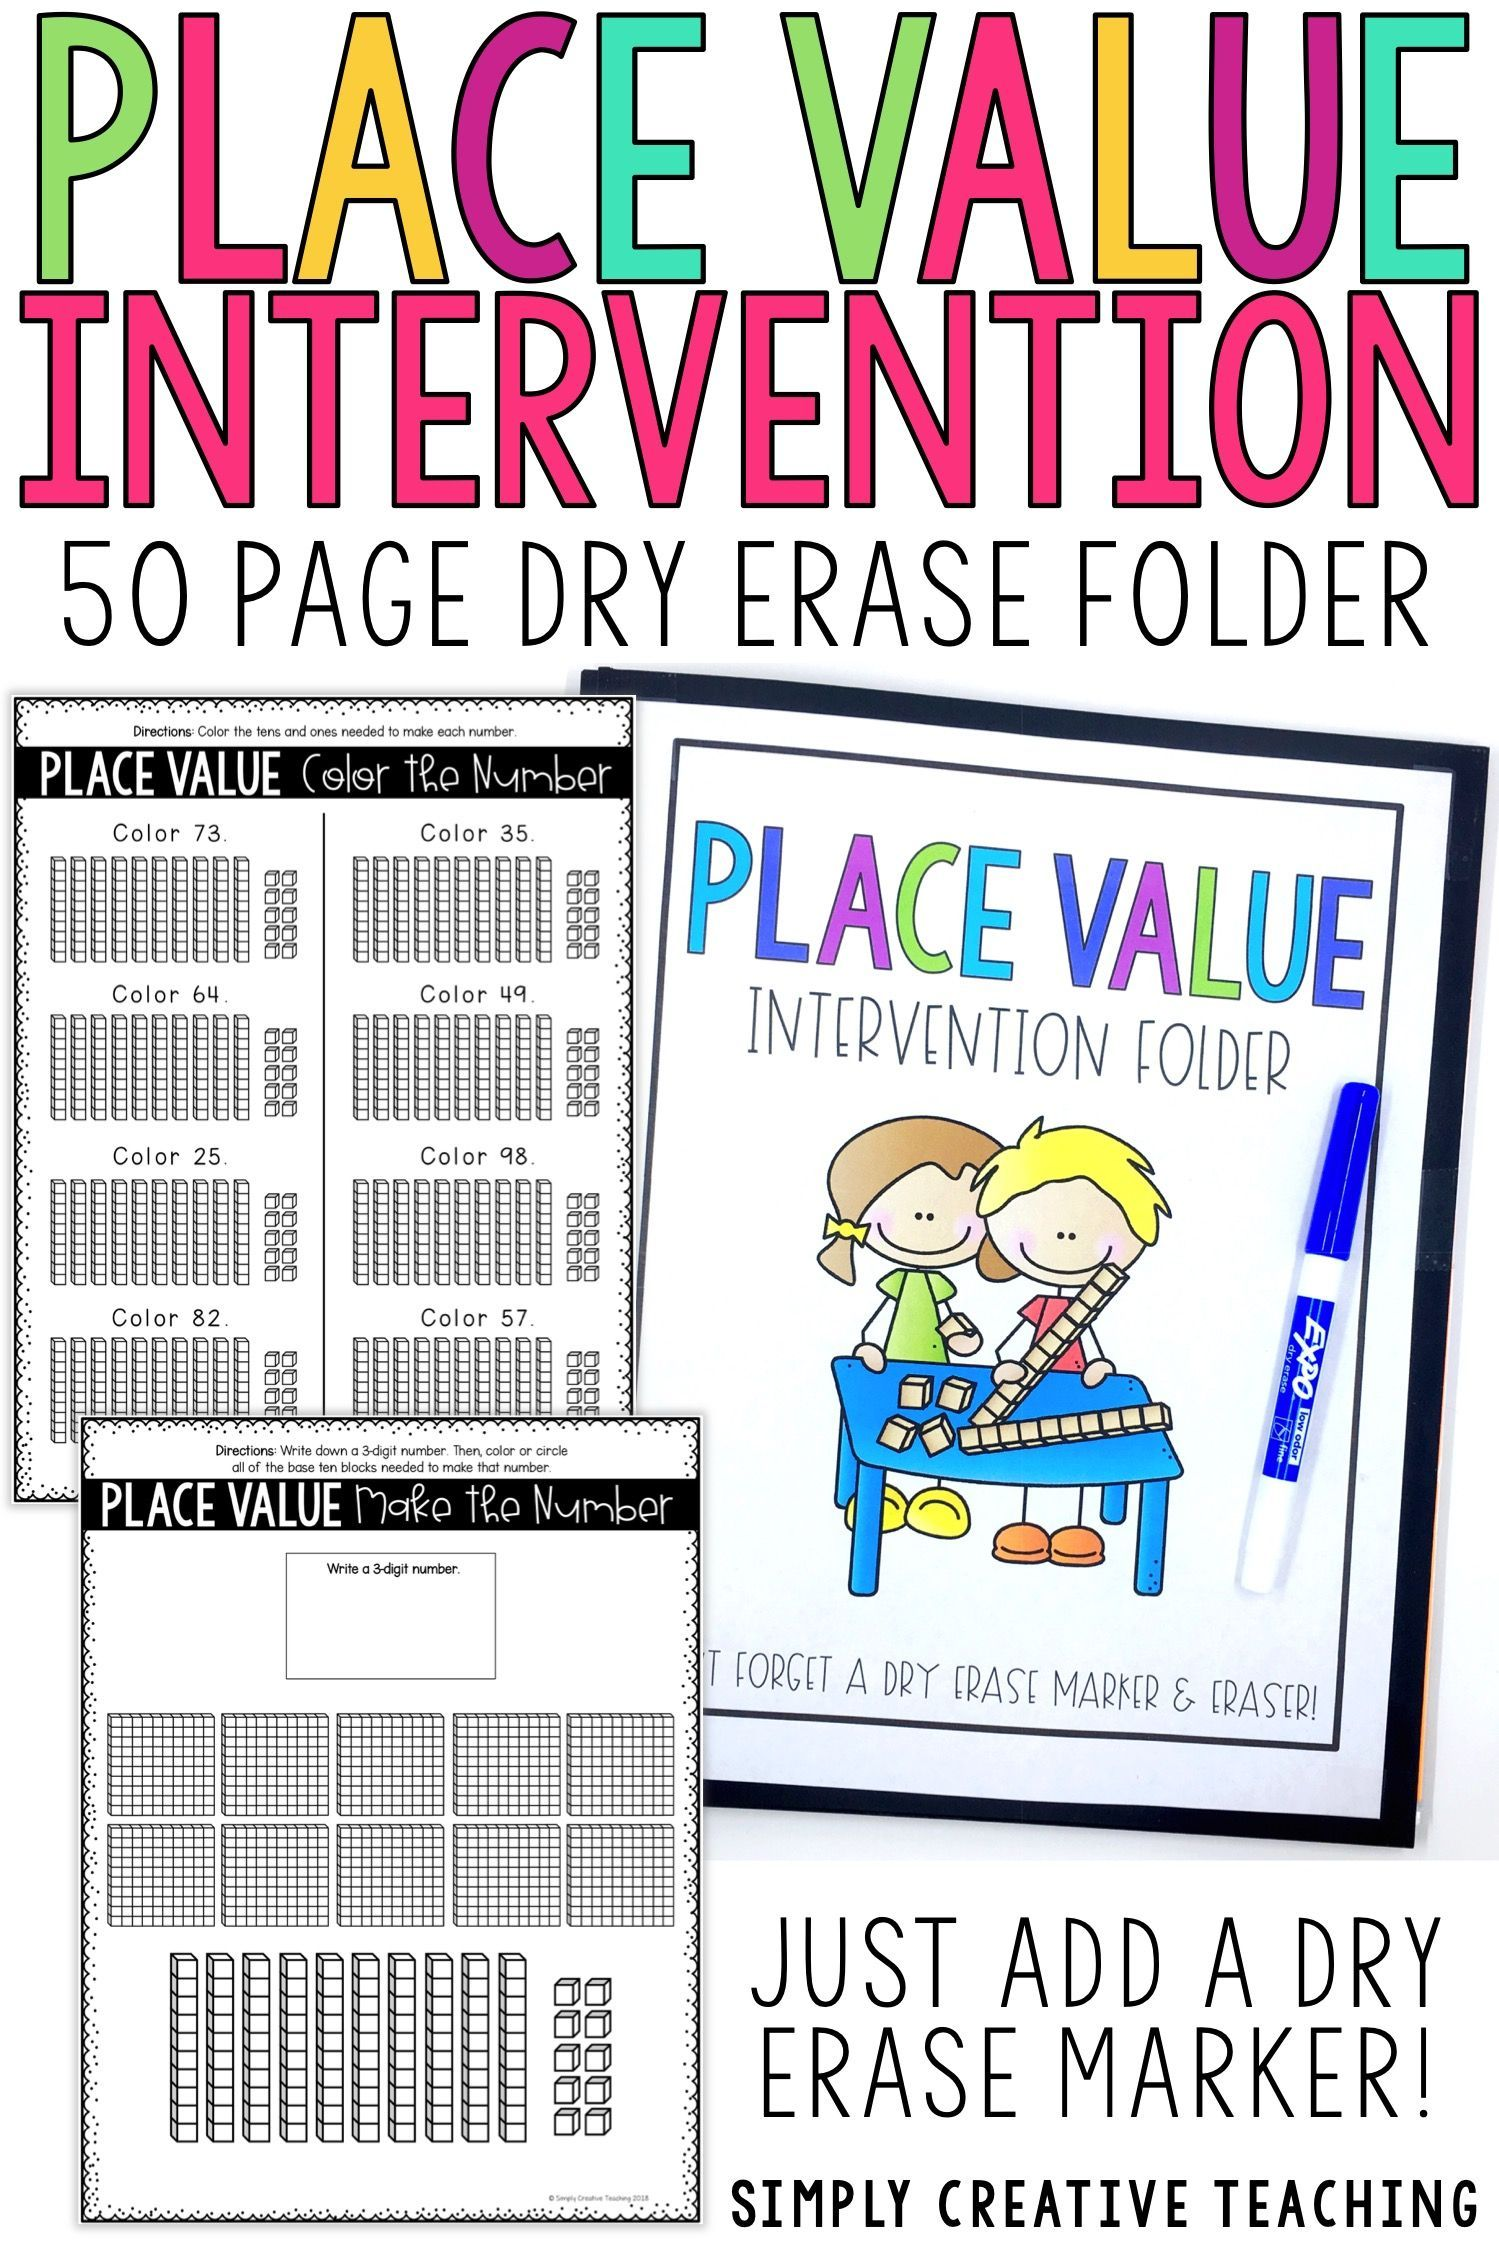 Place Value Intervention Or Extra Practice Folder